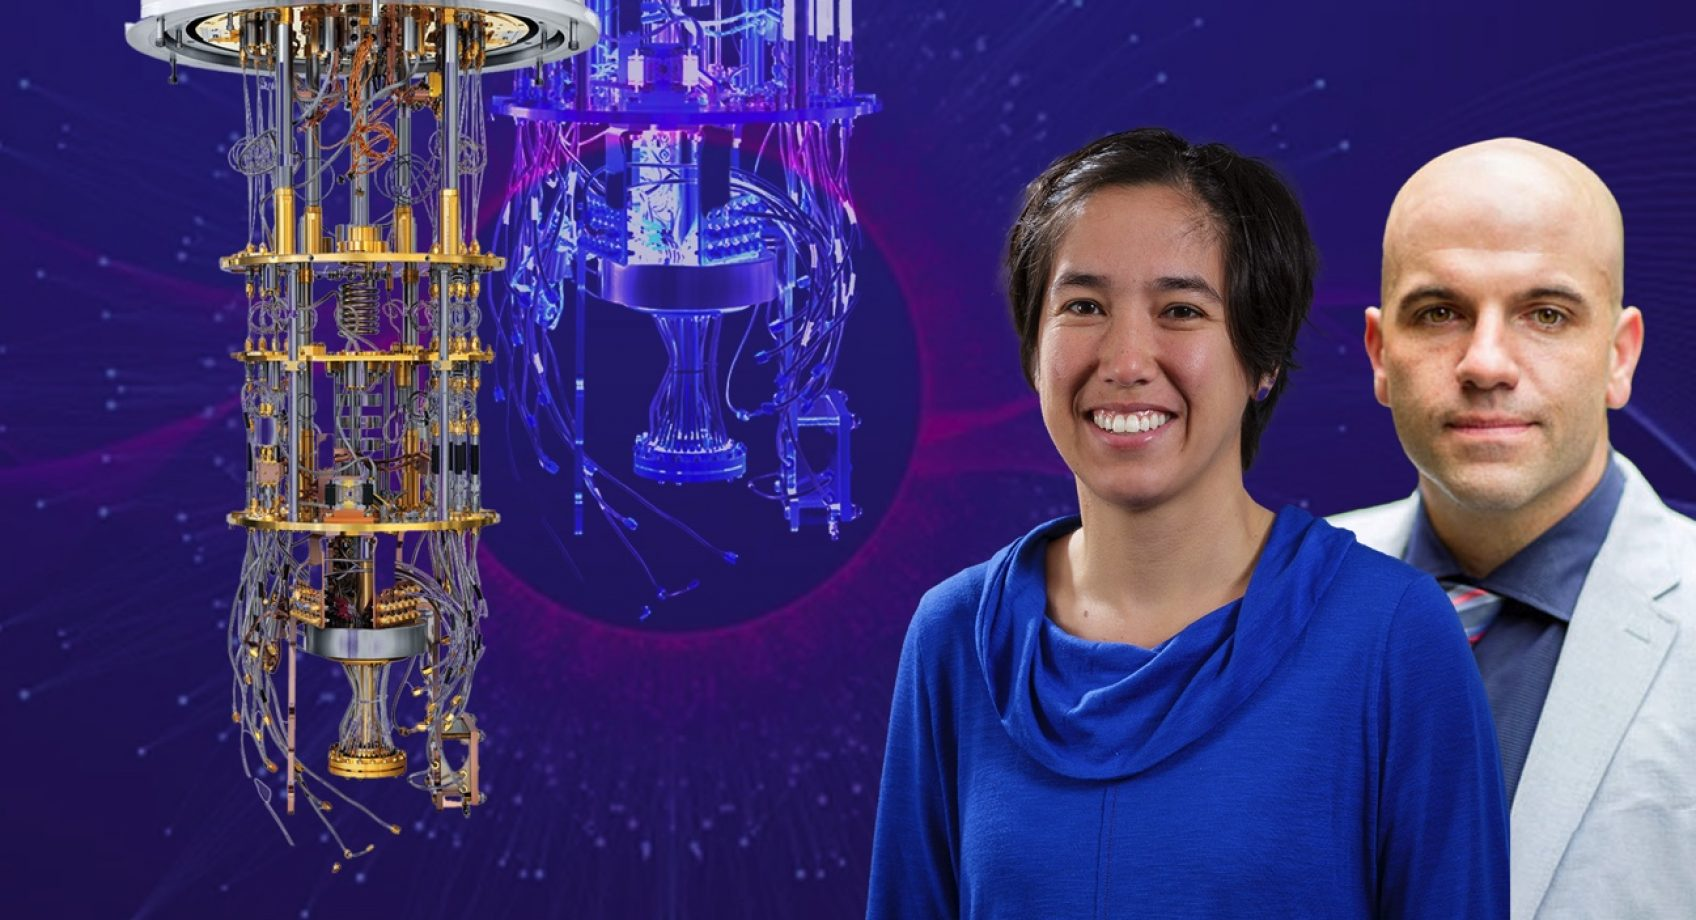 Quantum Leap - in quantum computing, UW scientists see the building blocks of the next technological revolution Banner